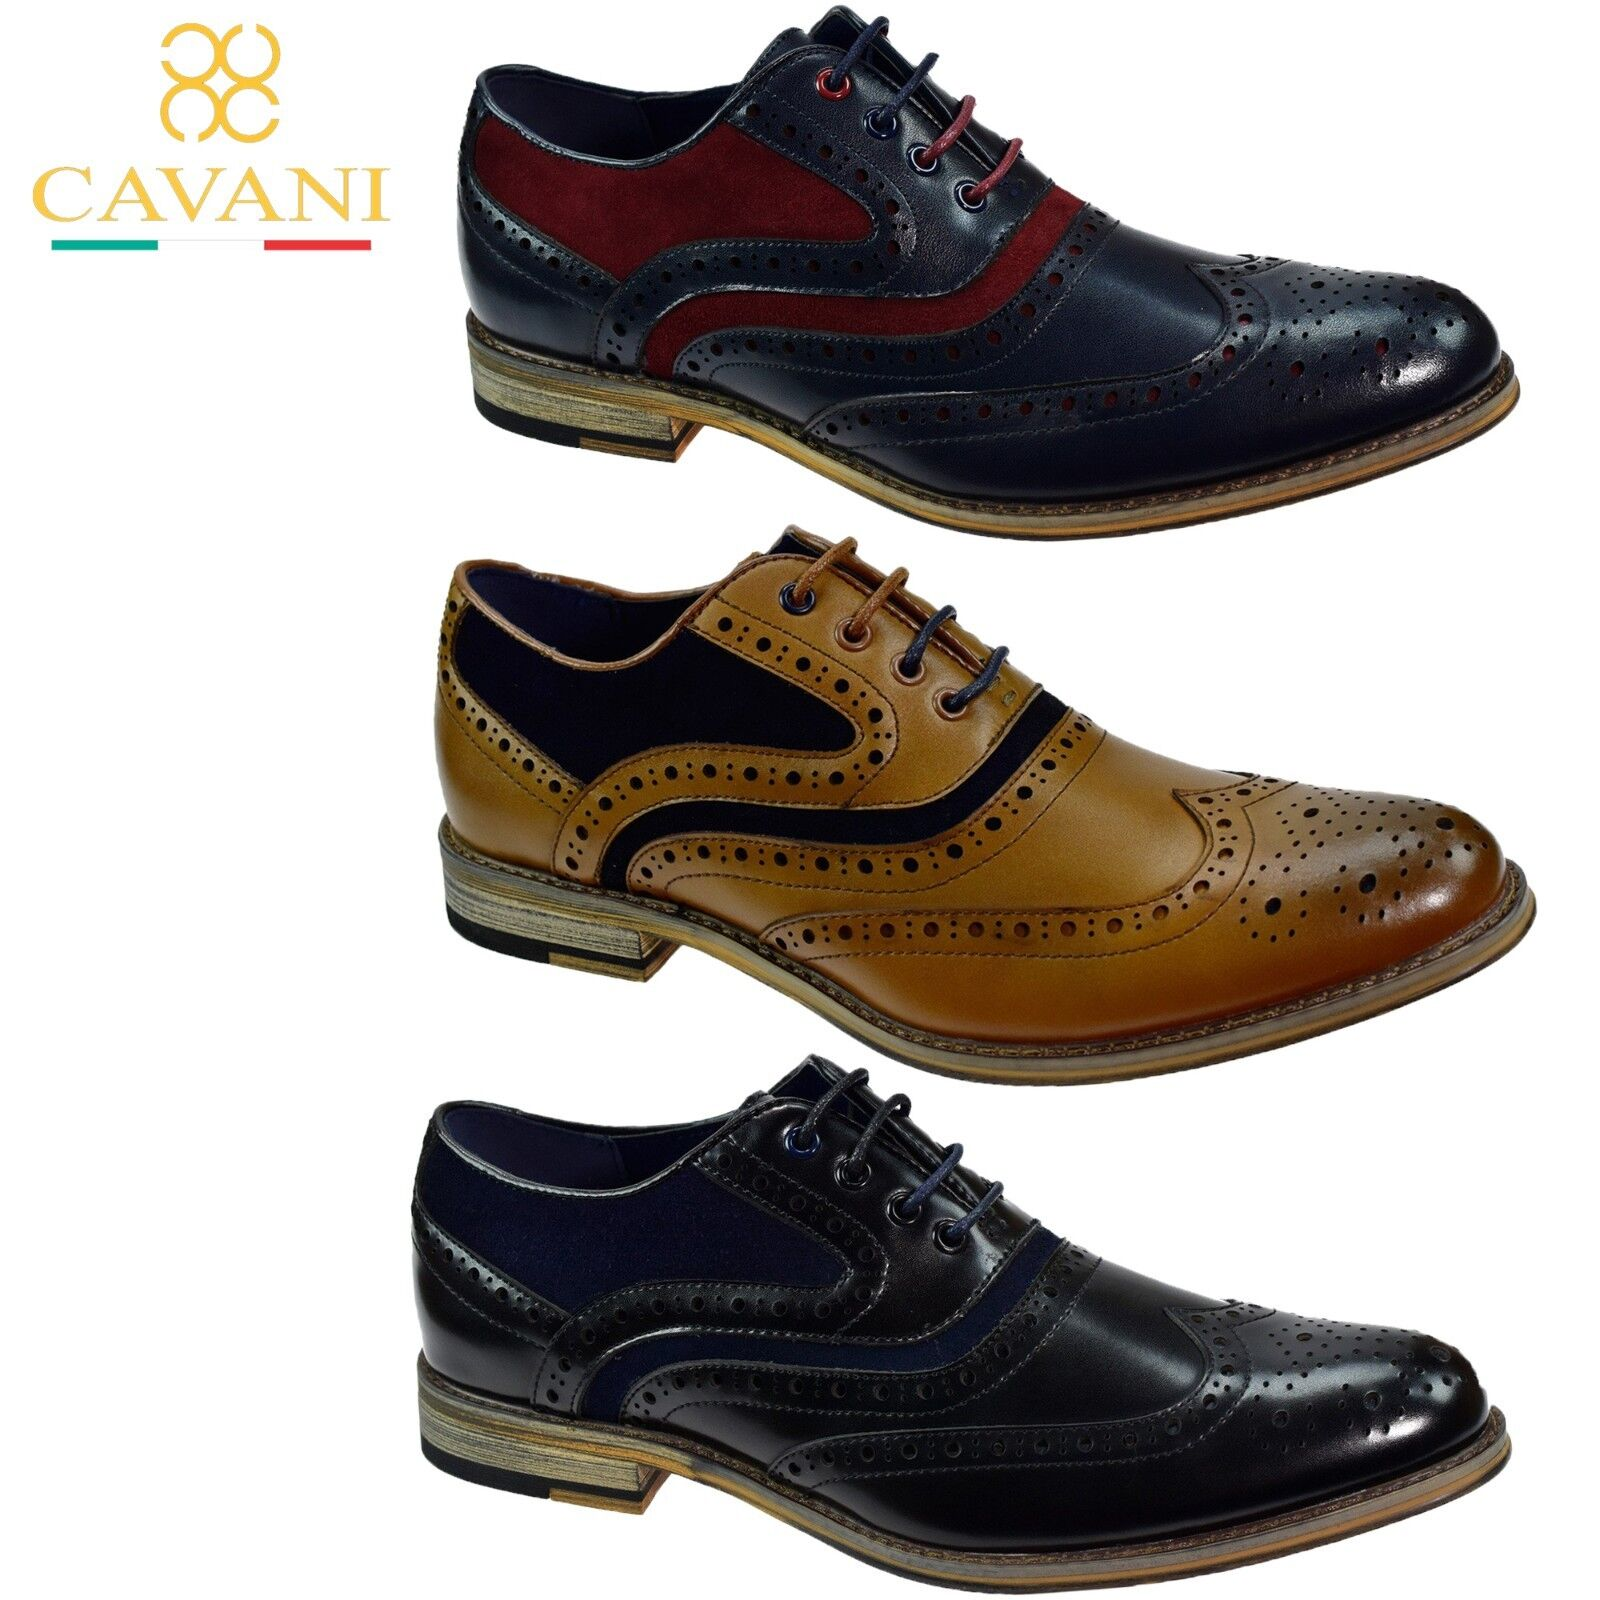 herren Real Leather Italian Brogue Lace Up schuhe By Cavani Formal Wedding Casual